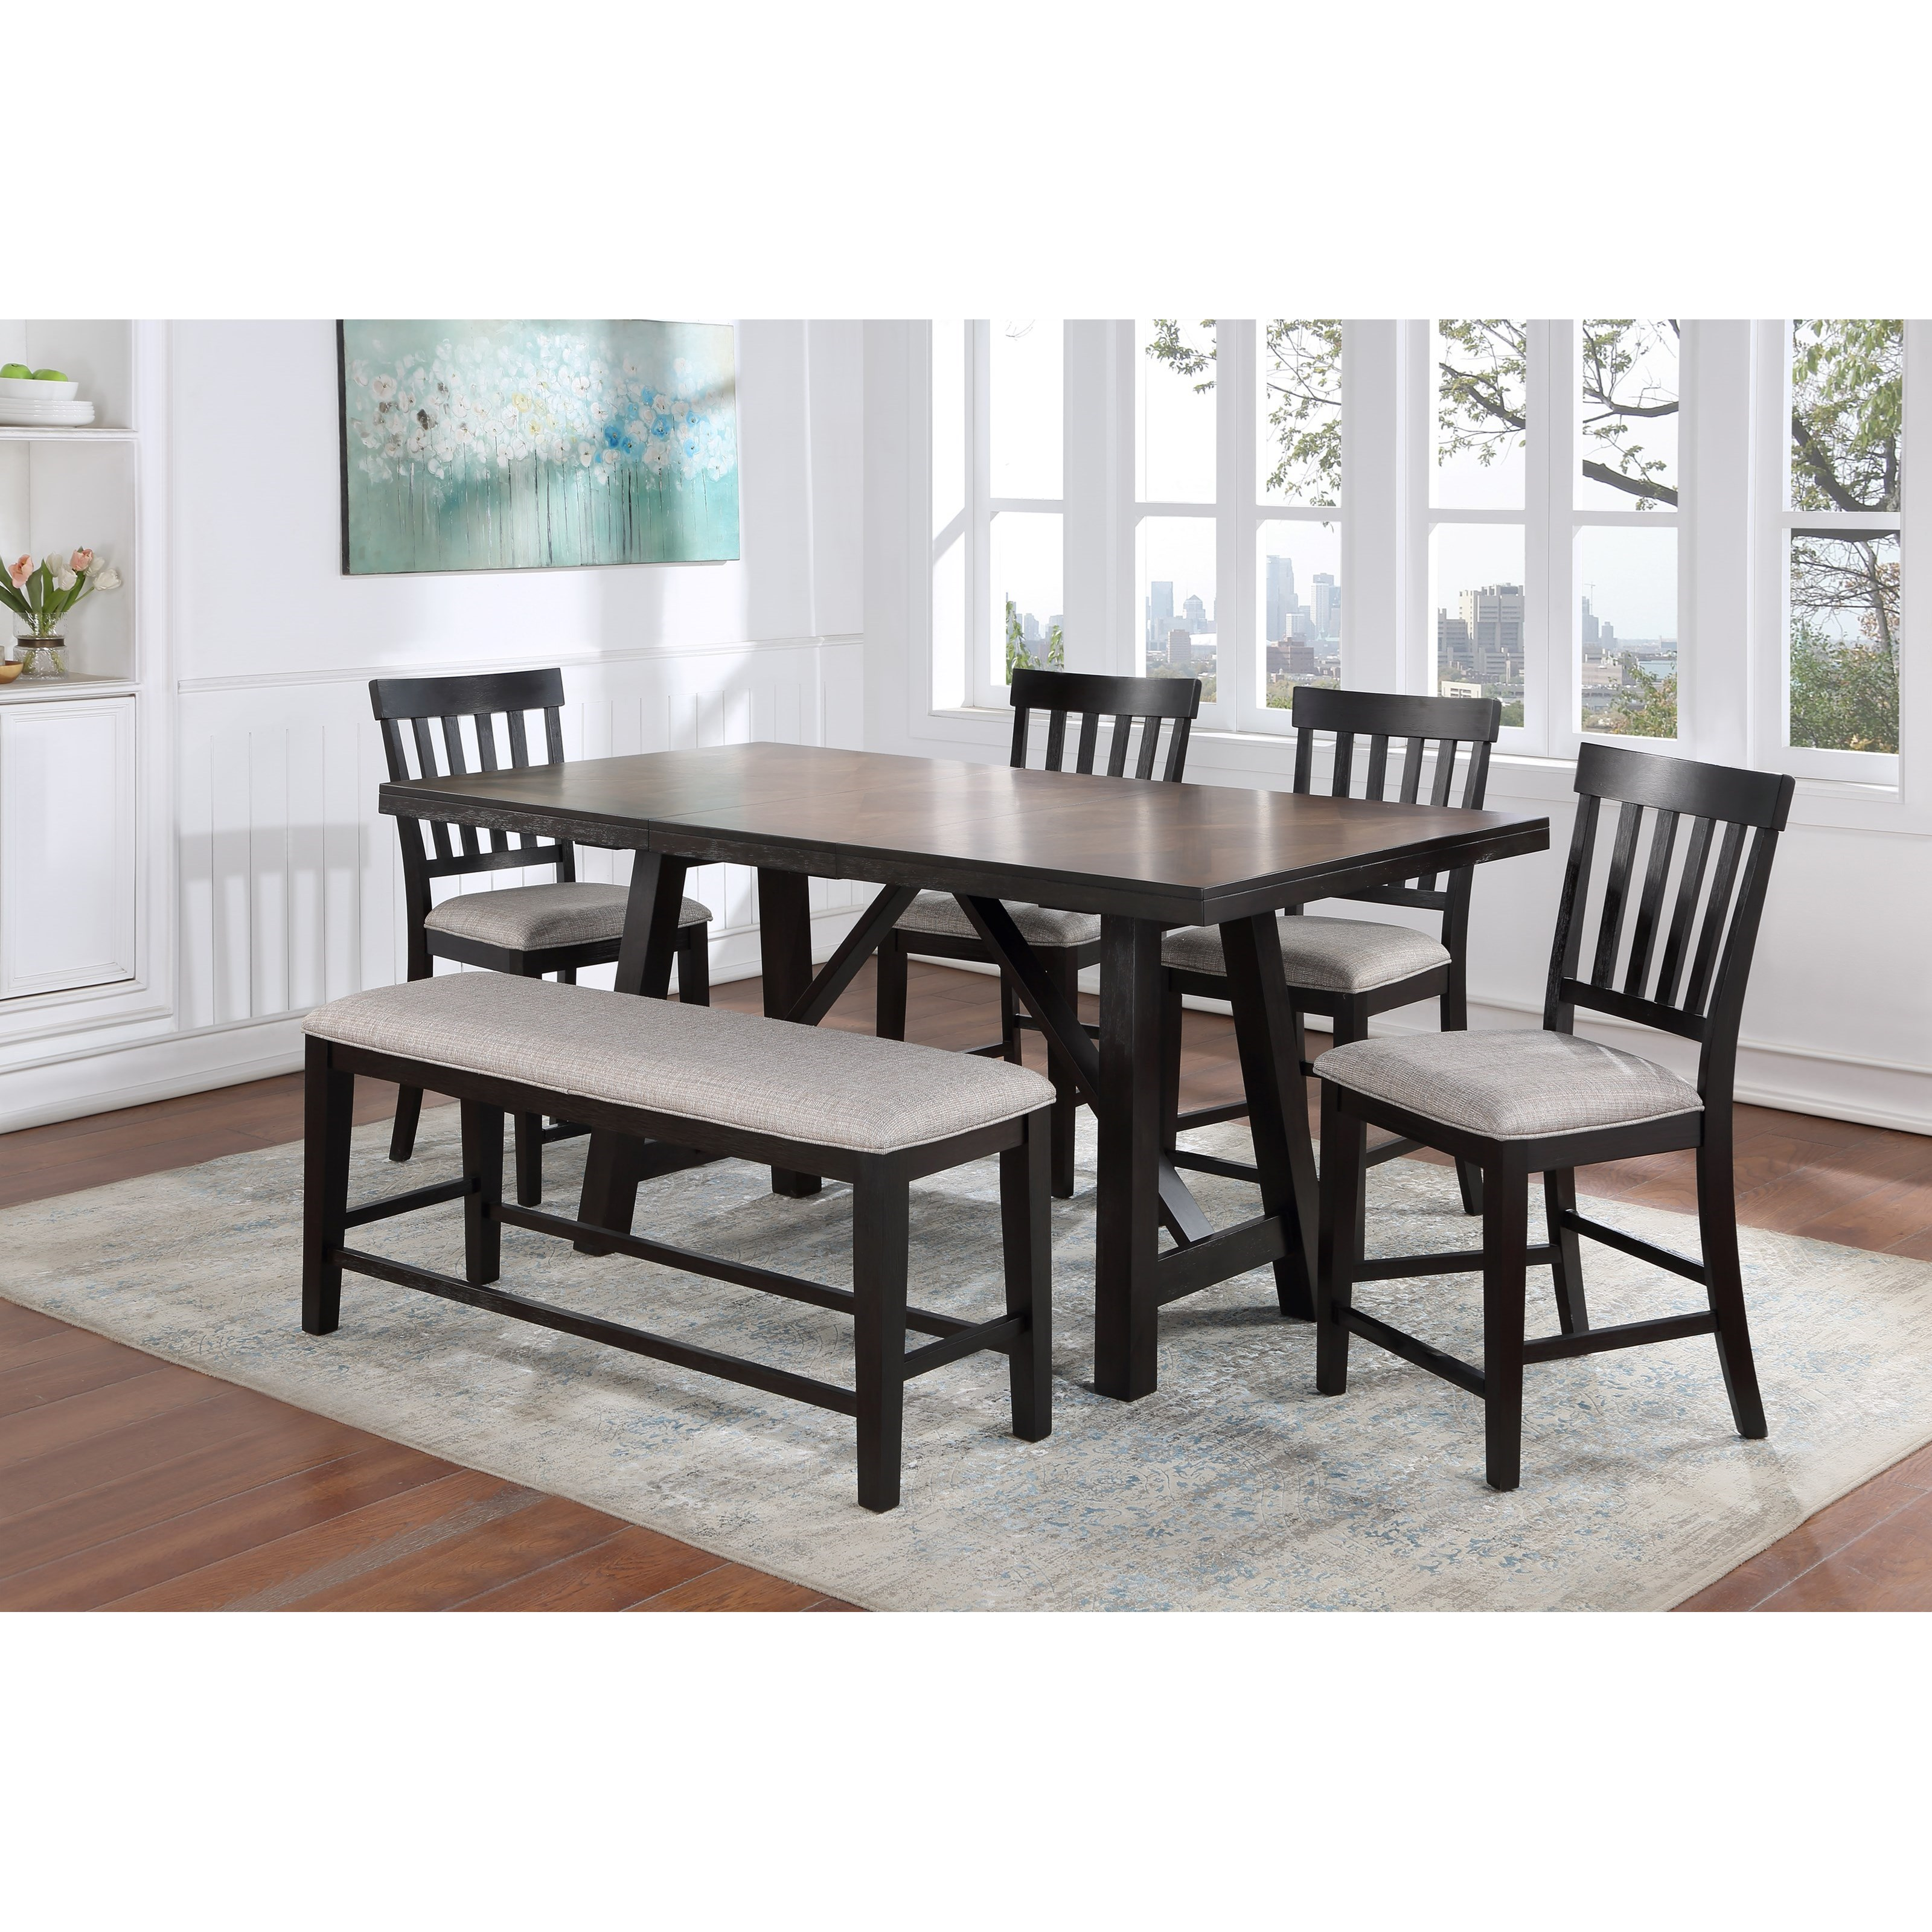 Halle Table & Chair Set with Bench by Steve Silver at Walker's Furniture